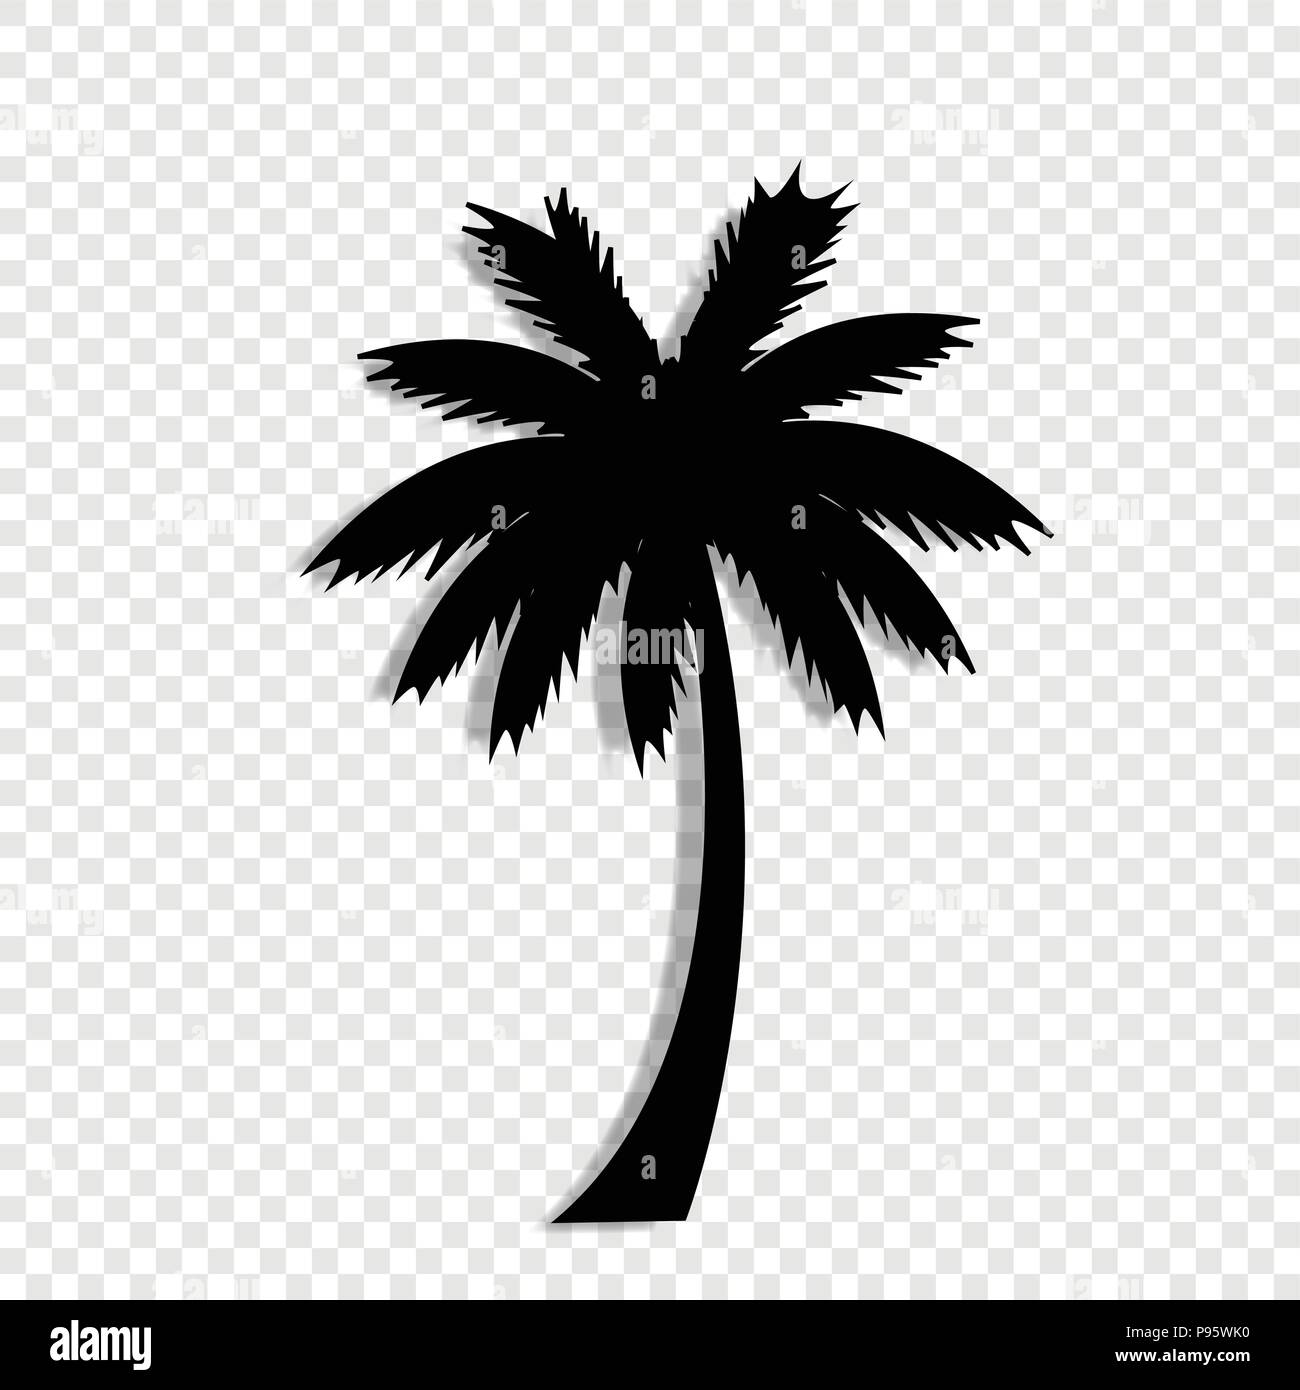 Vector Black Silhouette Illustration Of Palm Tree Icon Isolated On Transparent Background Stock